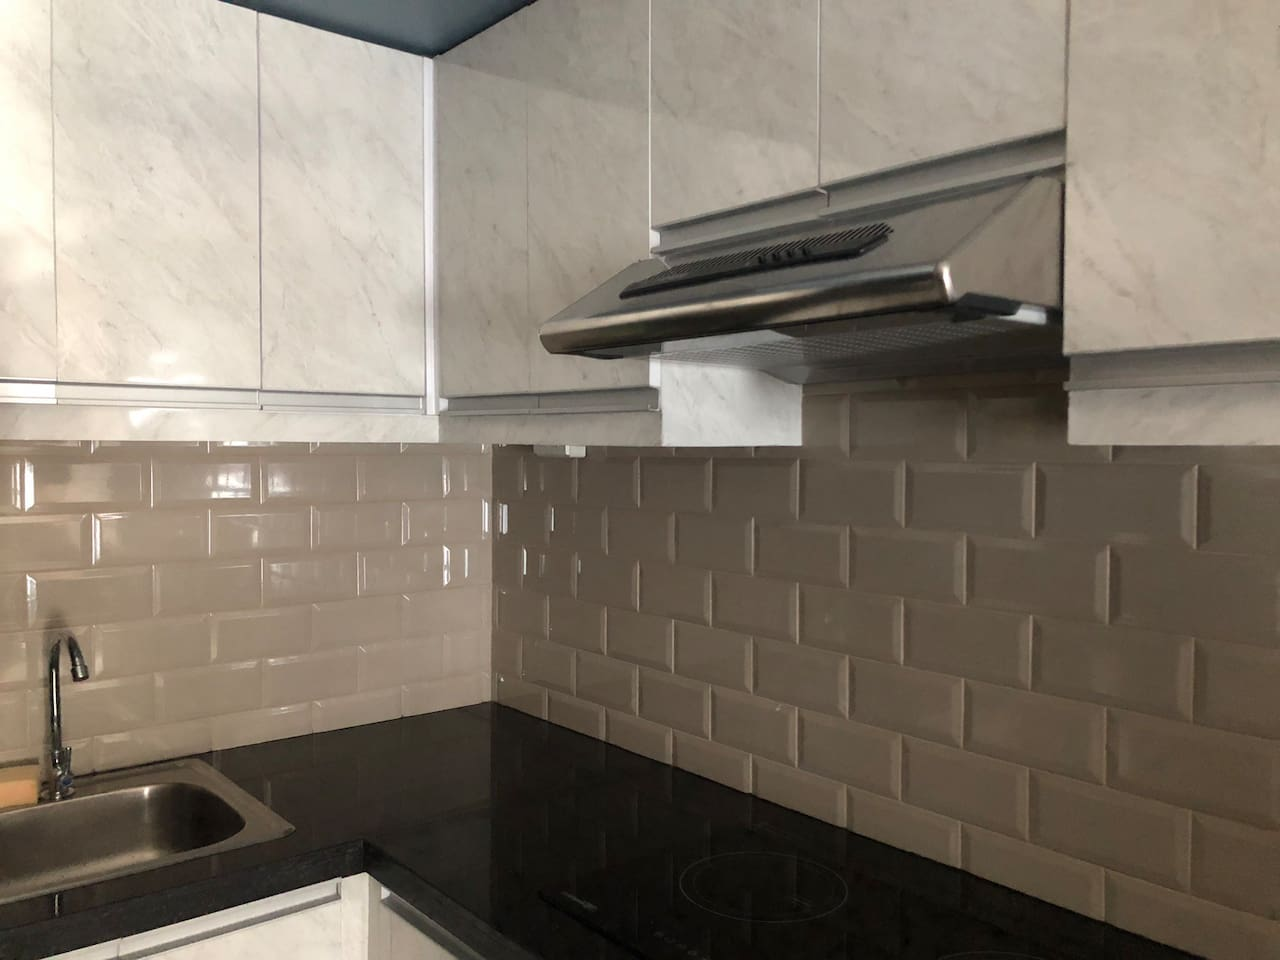 Brand new kitchen equipped with an induction cooker , complete with pots, pans, plates and kitchen supplies